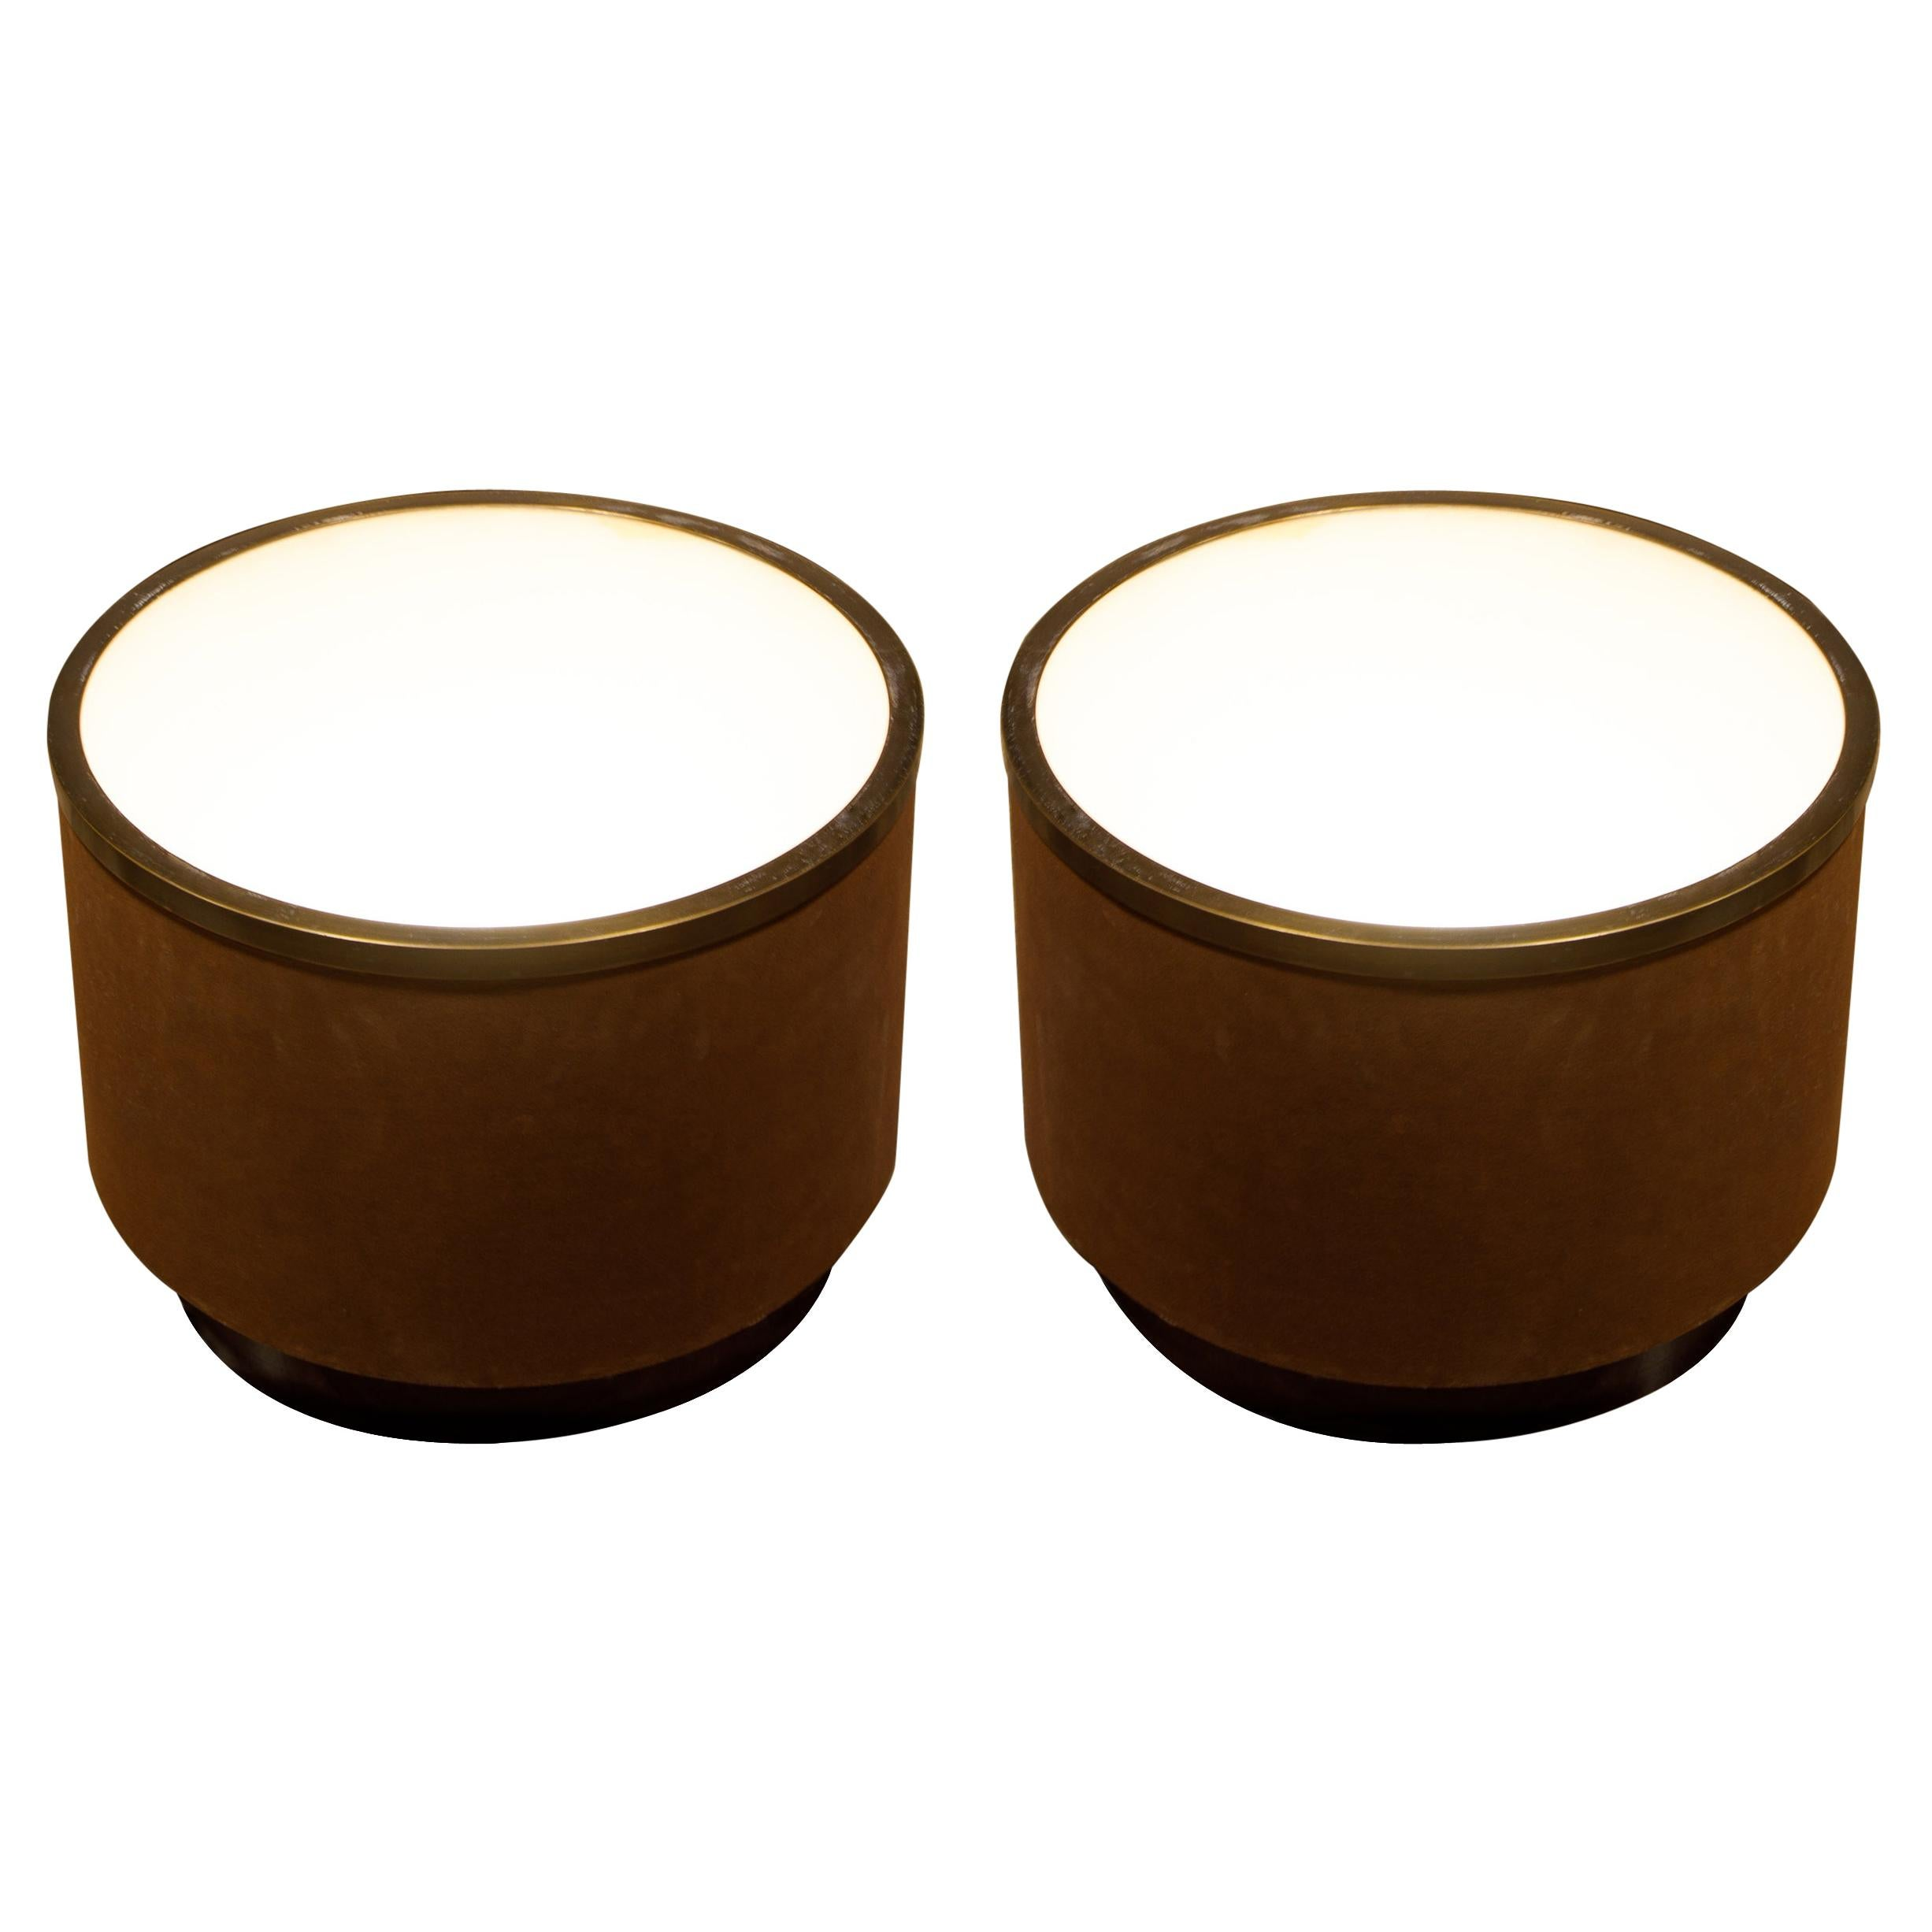 Pair of Illuminated Suede Drum Side Tables by Steve Chase, c. 1980